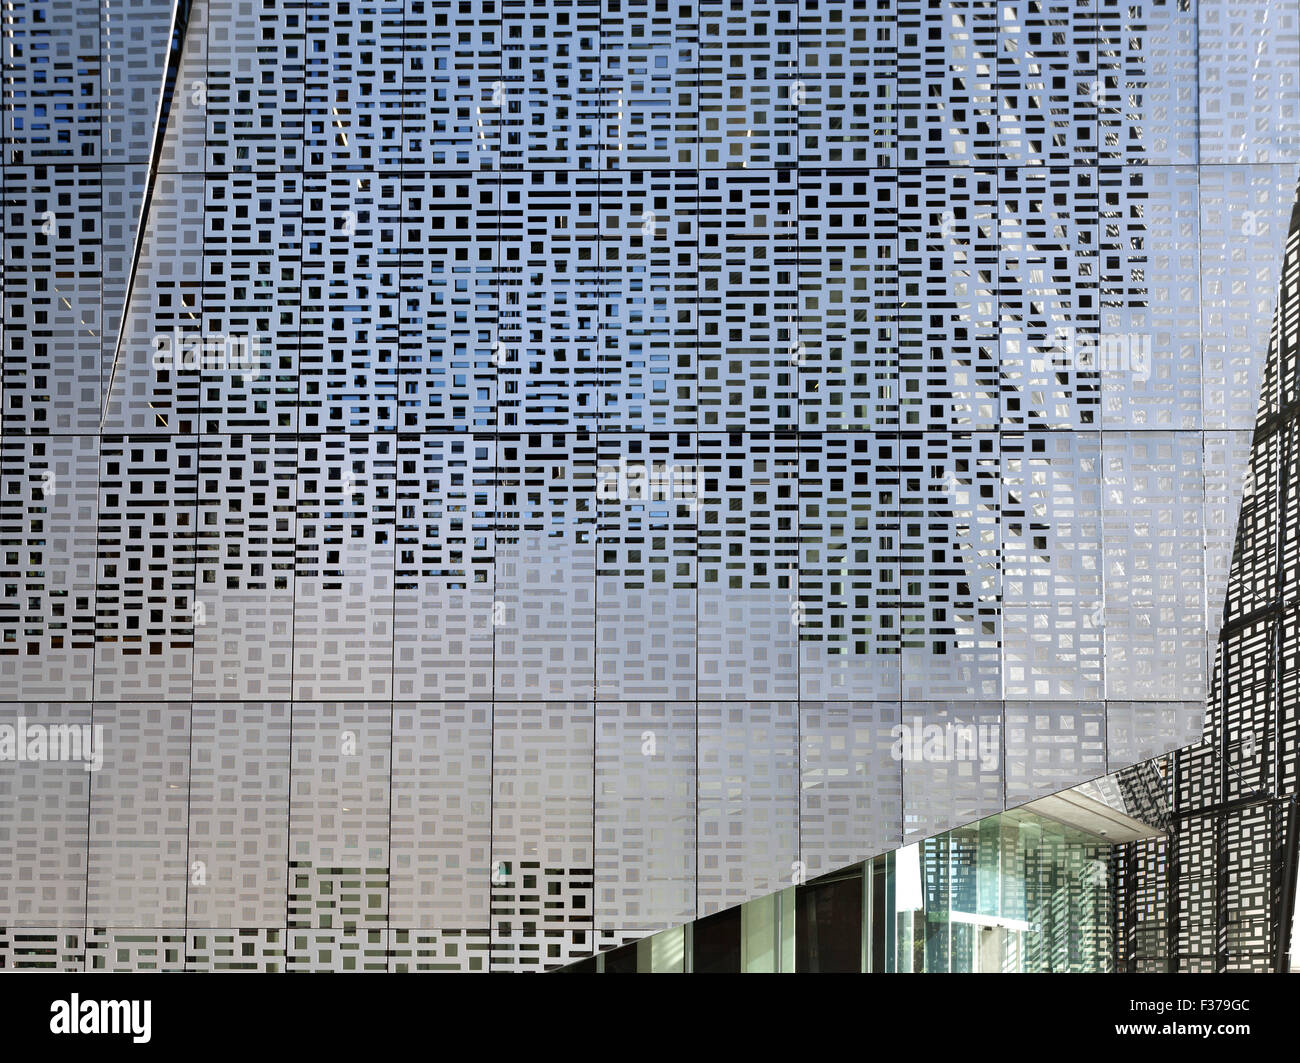 Perforated Screen Stock Photos Amp Perforated Screen Stock